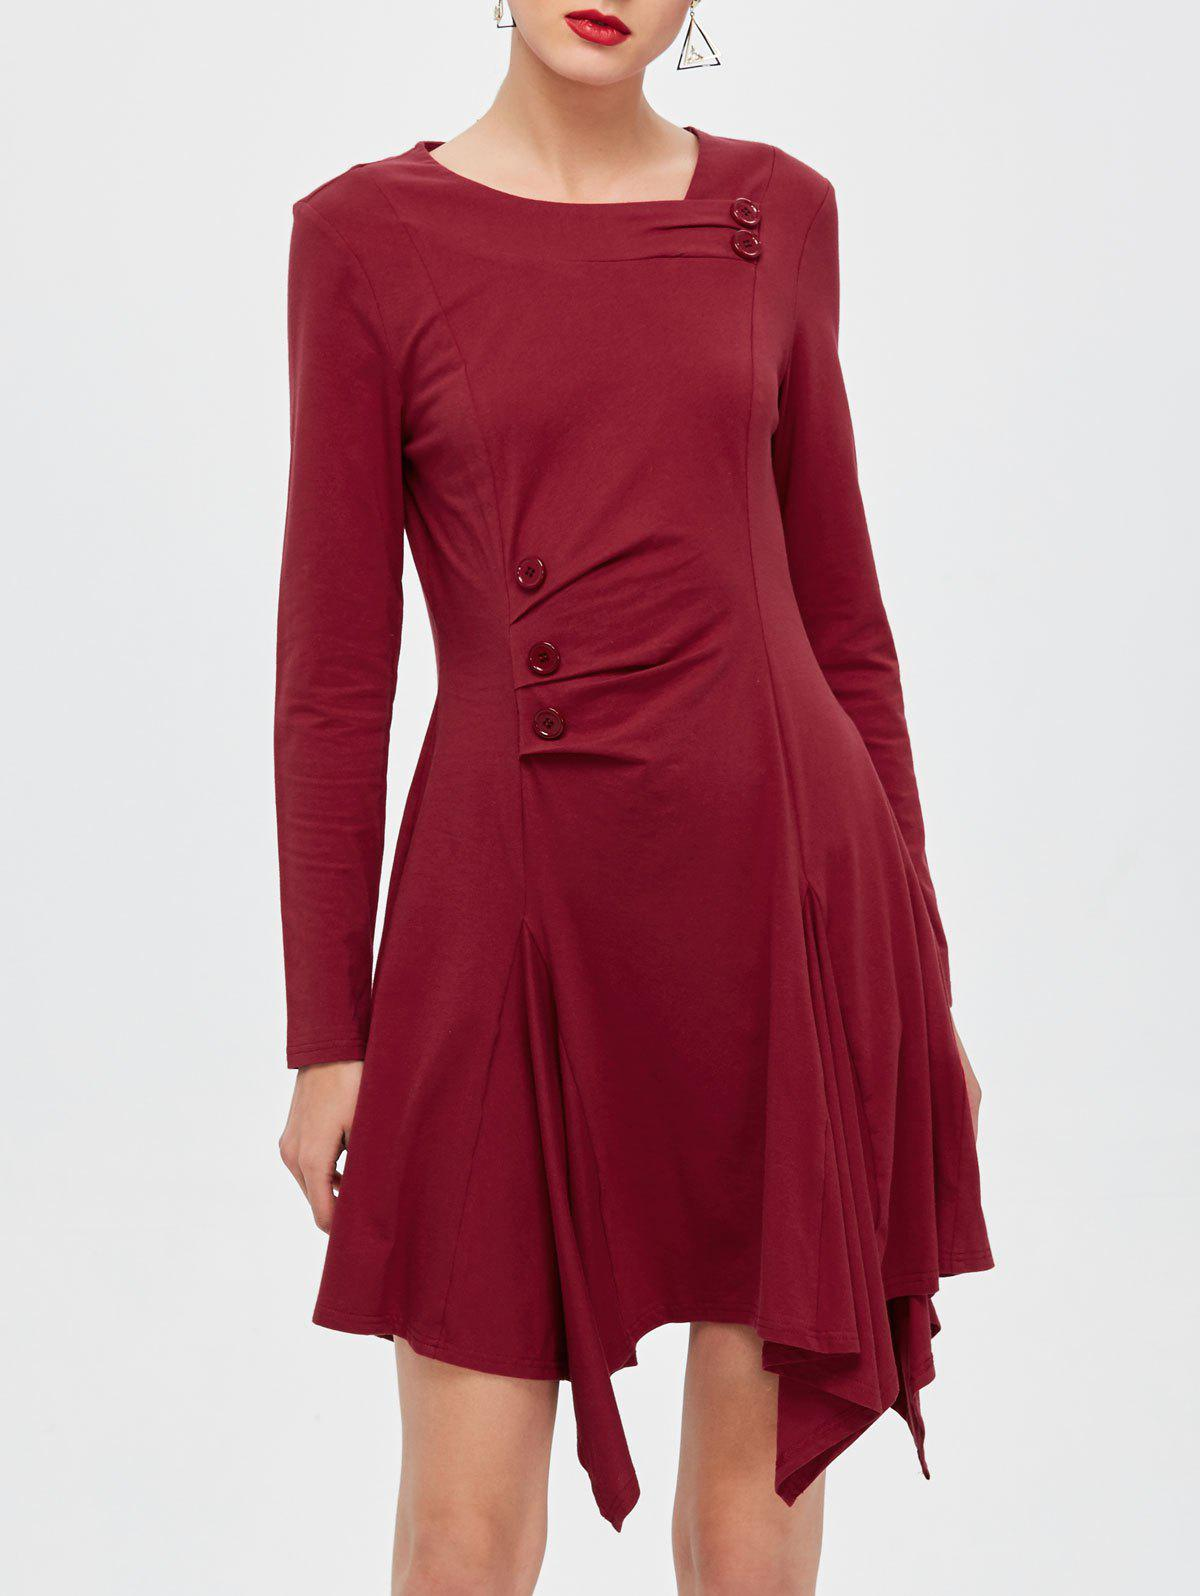 Button Decorated Asymmetrical DressWomen<br><br><br>Size: M<br>Color: CLARET